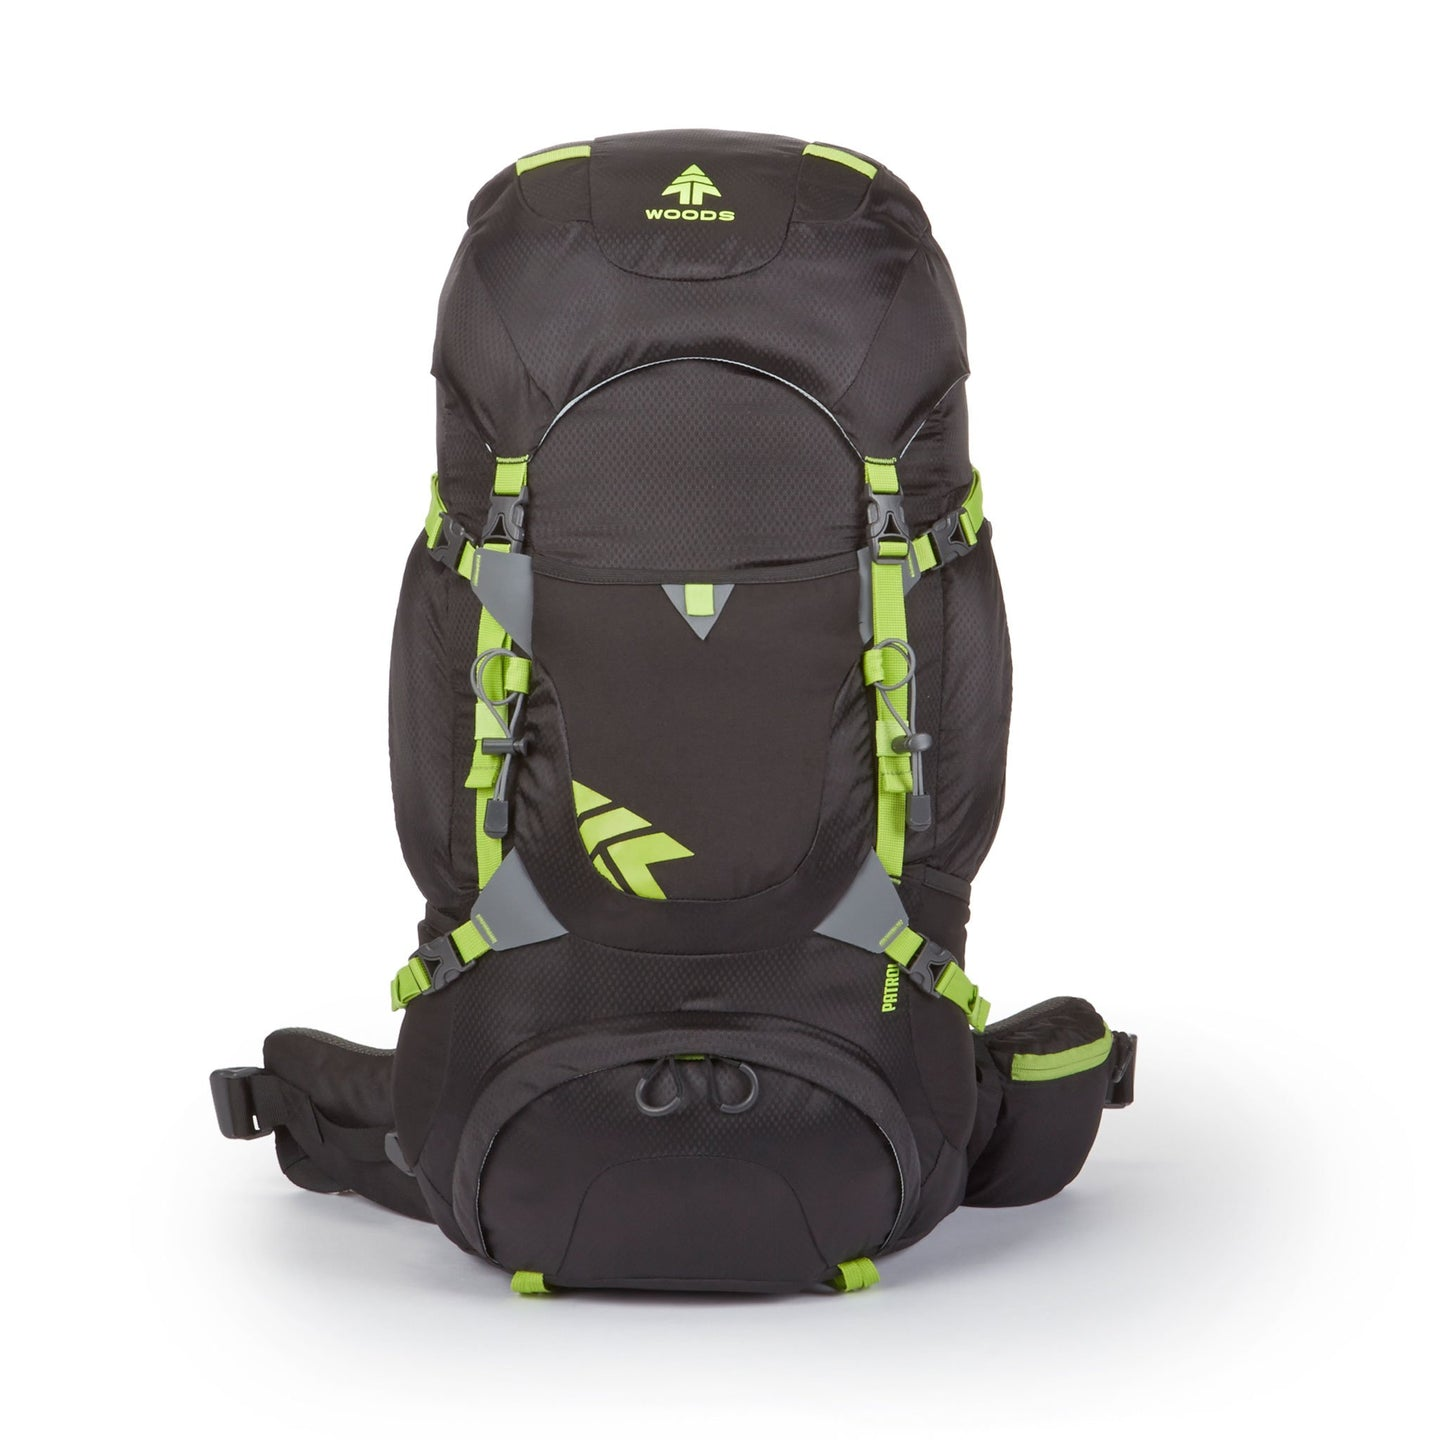 Woods Patrol 40L Backpack - Black